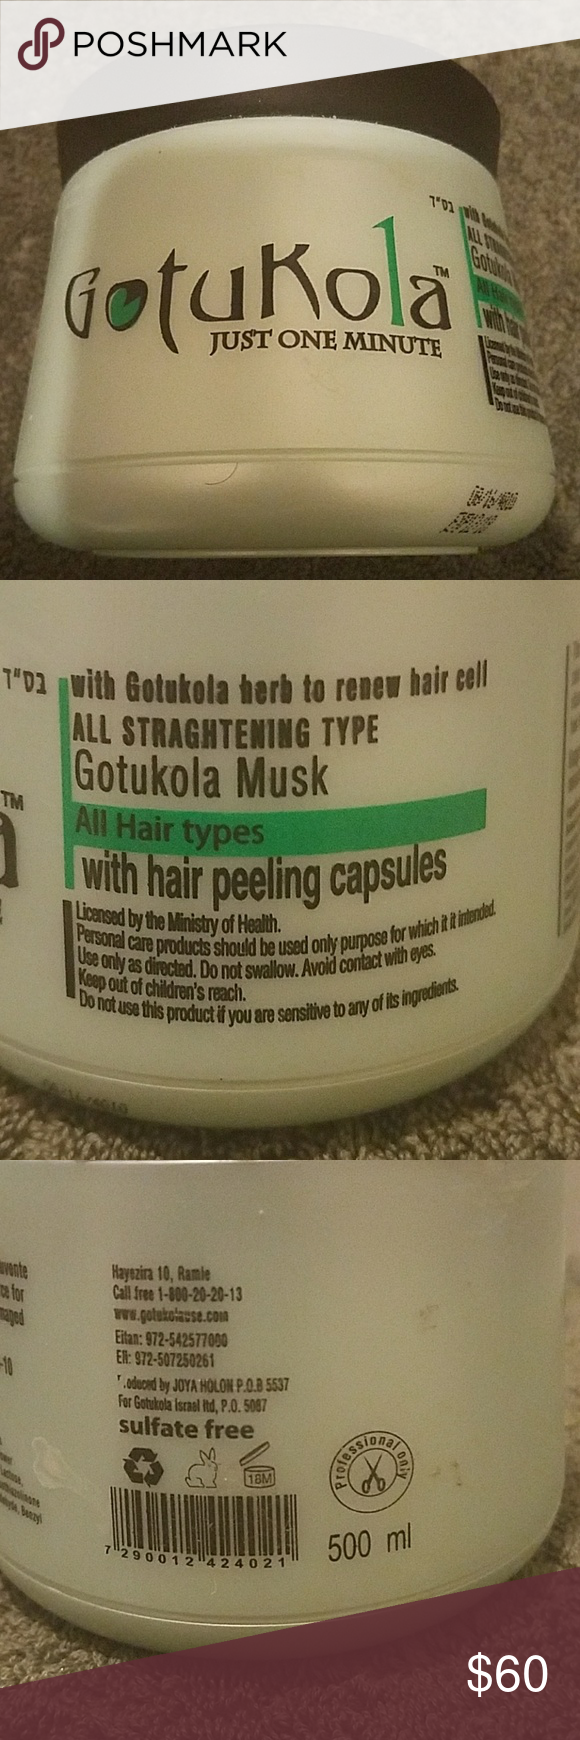 Gotukola Mask With Peeling Capsules 500ml Gotukola Official Peeling Capsules Helps Cleanse The Scalp And Hair With Hair Conditioner I Am Awesome Hair Shampoo